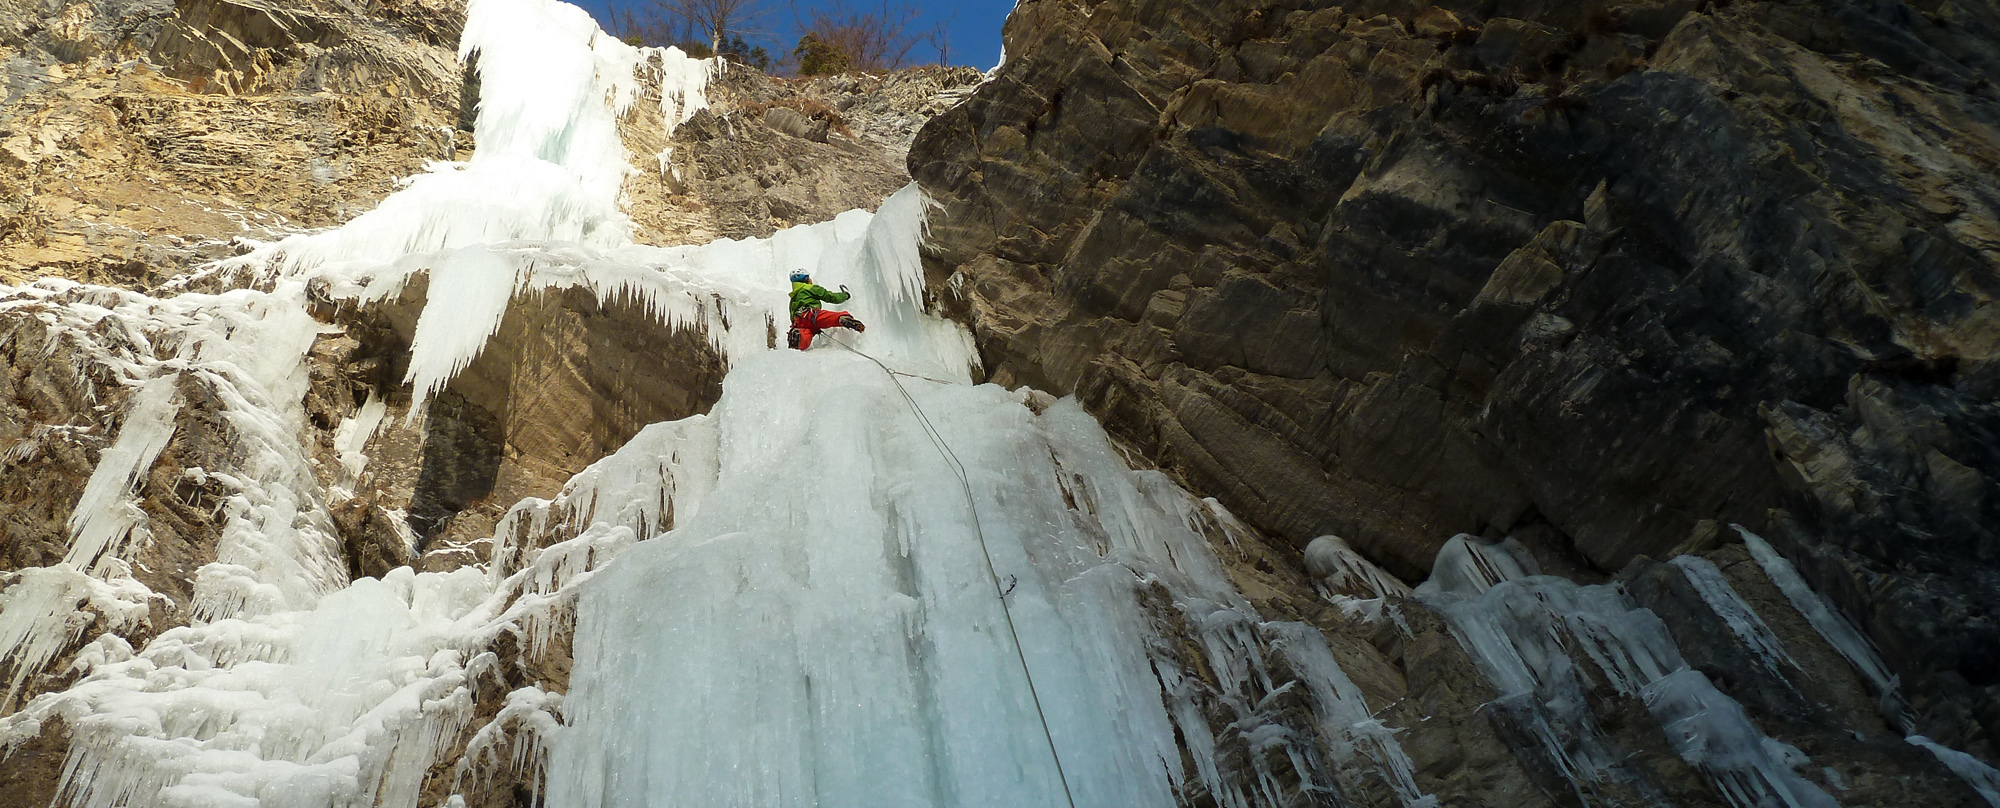 Ice climbing on icy waterfalls in Gastein valley.